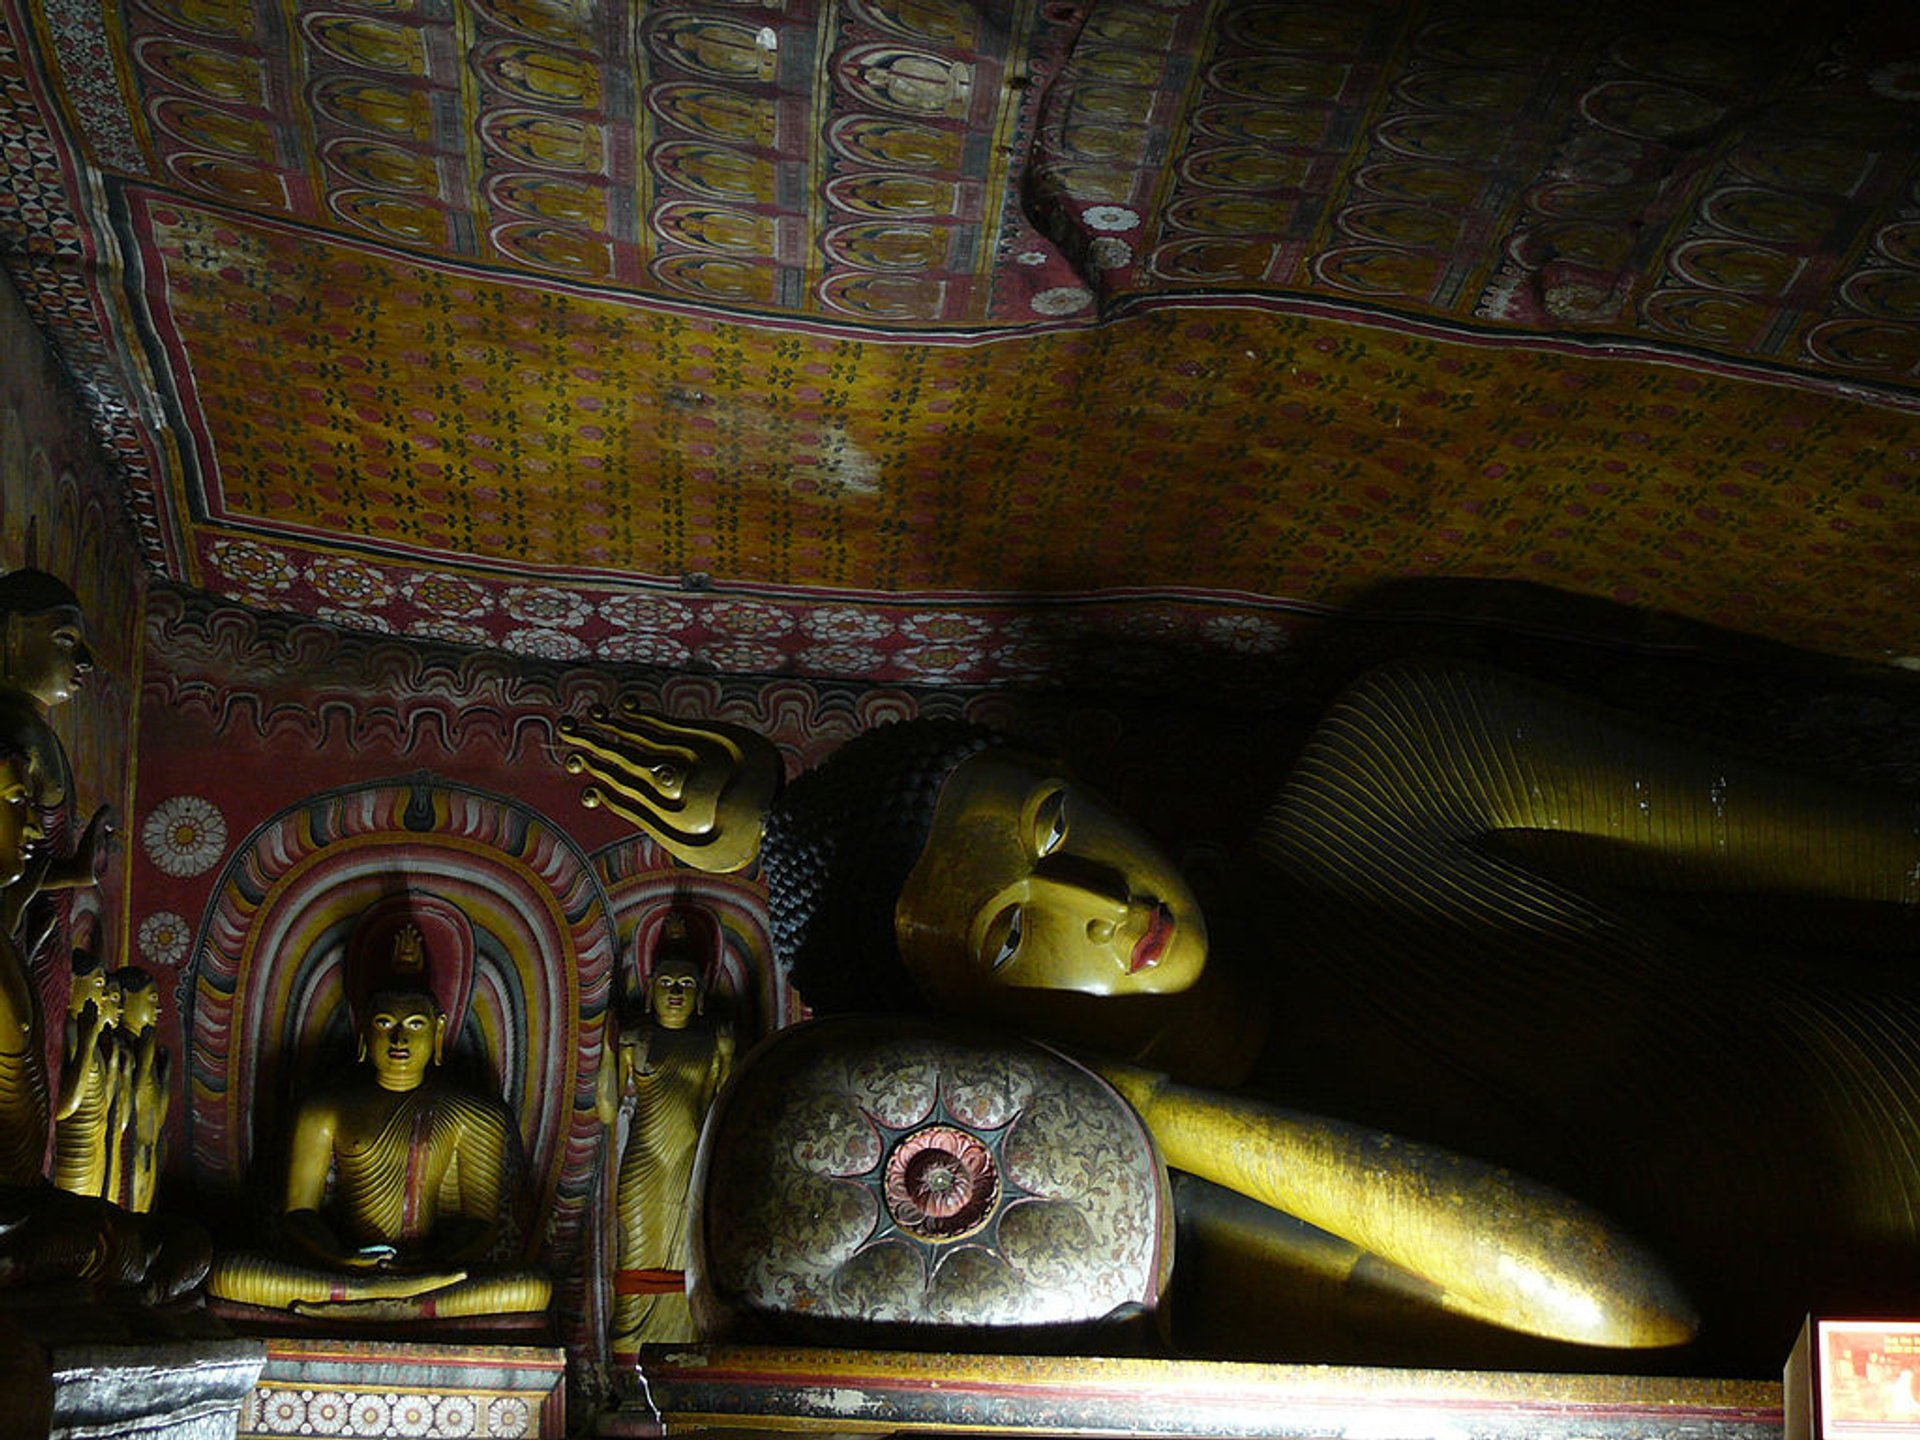 Image of a reclining Buddha in Dambulla complex of cave monasteries 2019